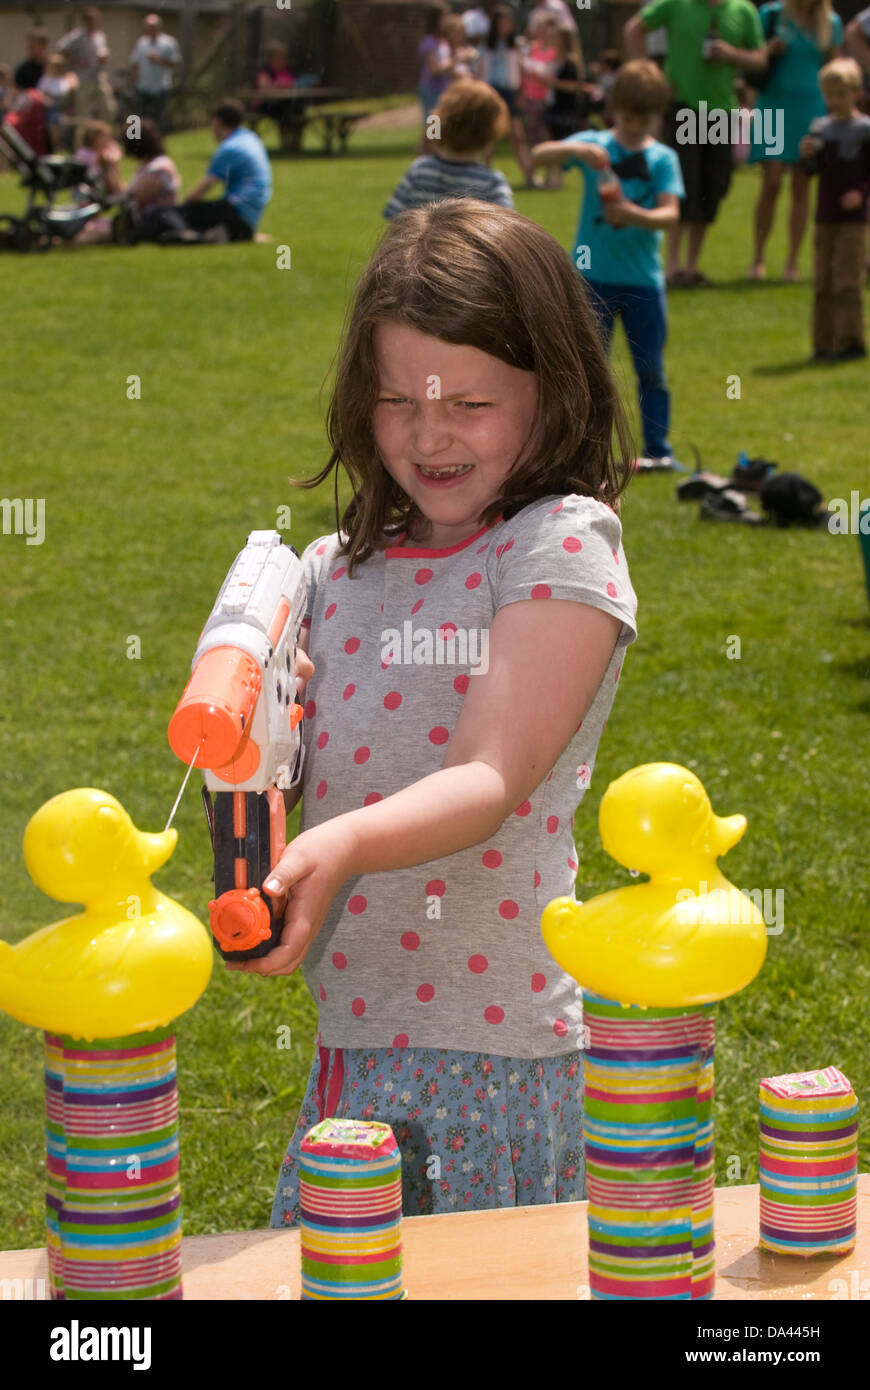 7 year old girl at summer fete using water pistol to squirt plastic ducks, Sheet, Hampshire, UK. - Stock Image